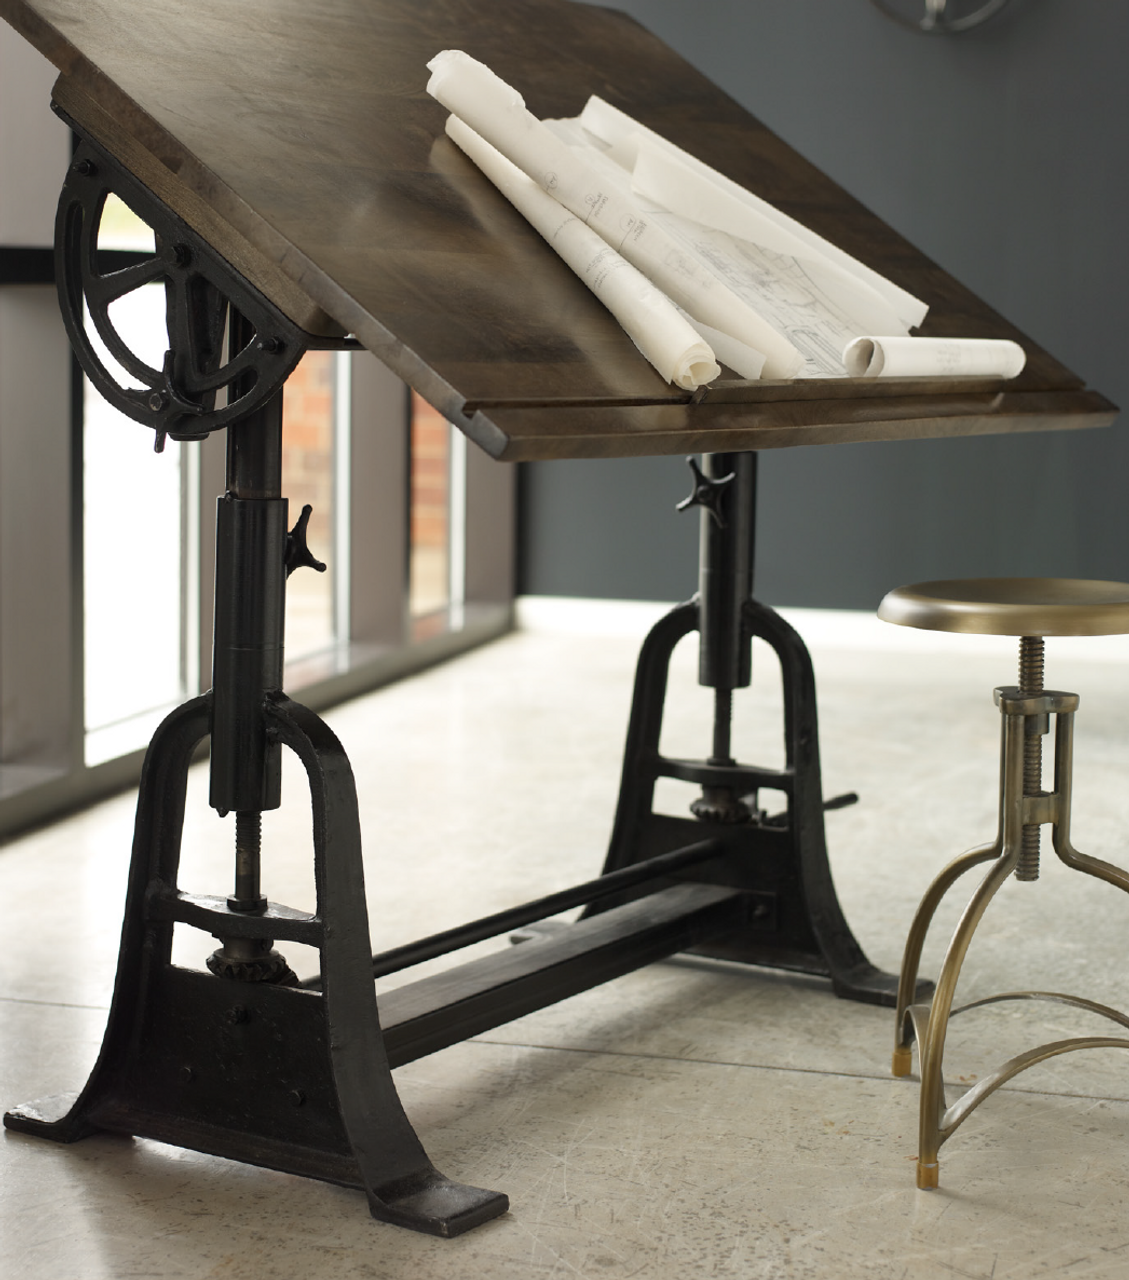 french architect drafting table - Architectural Drafting Table